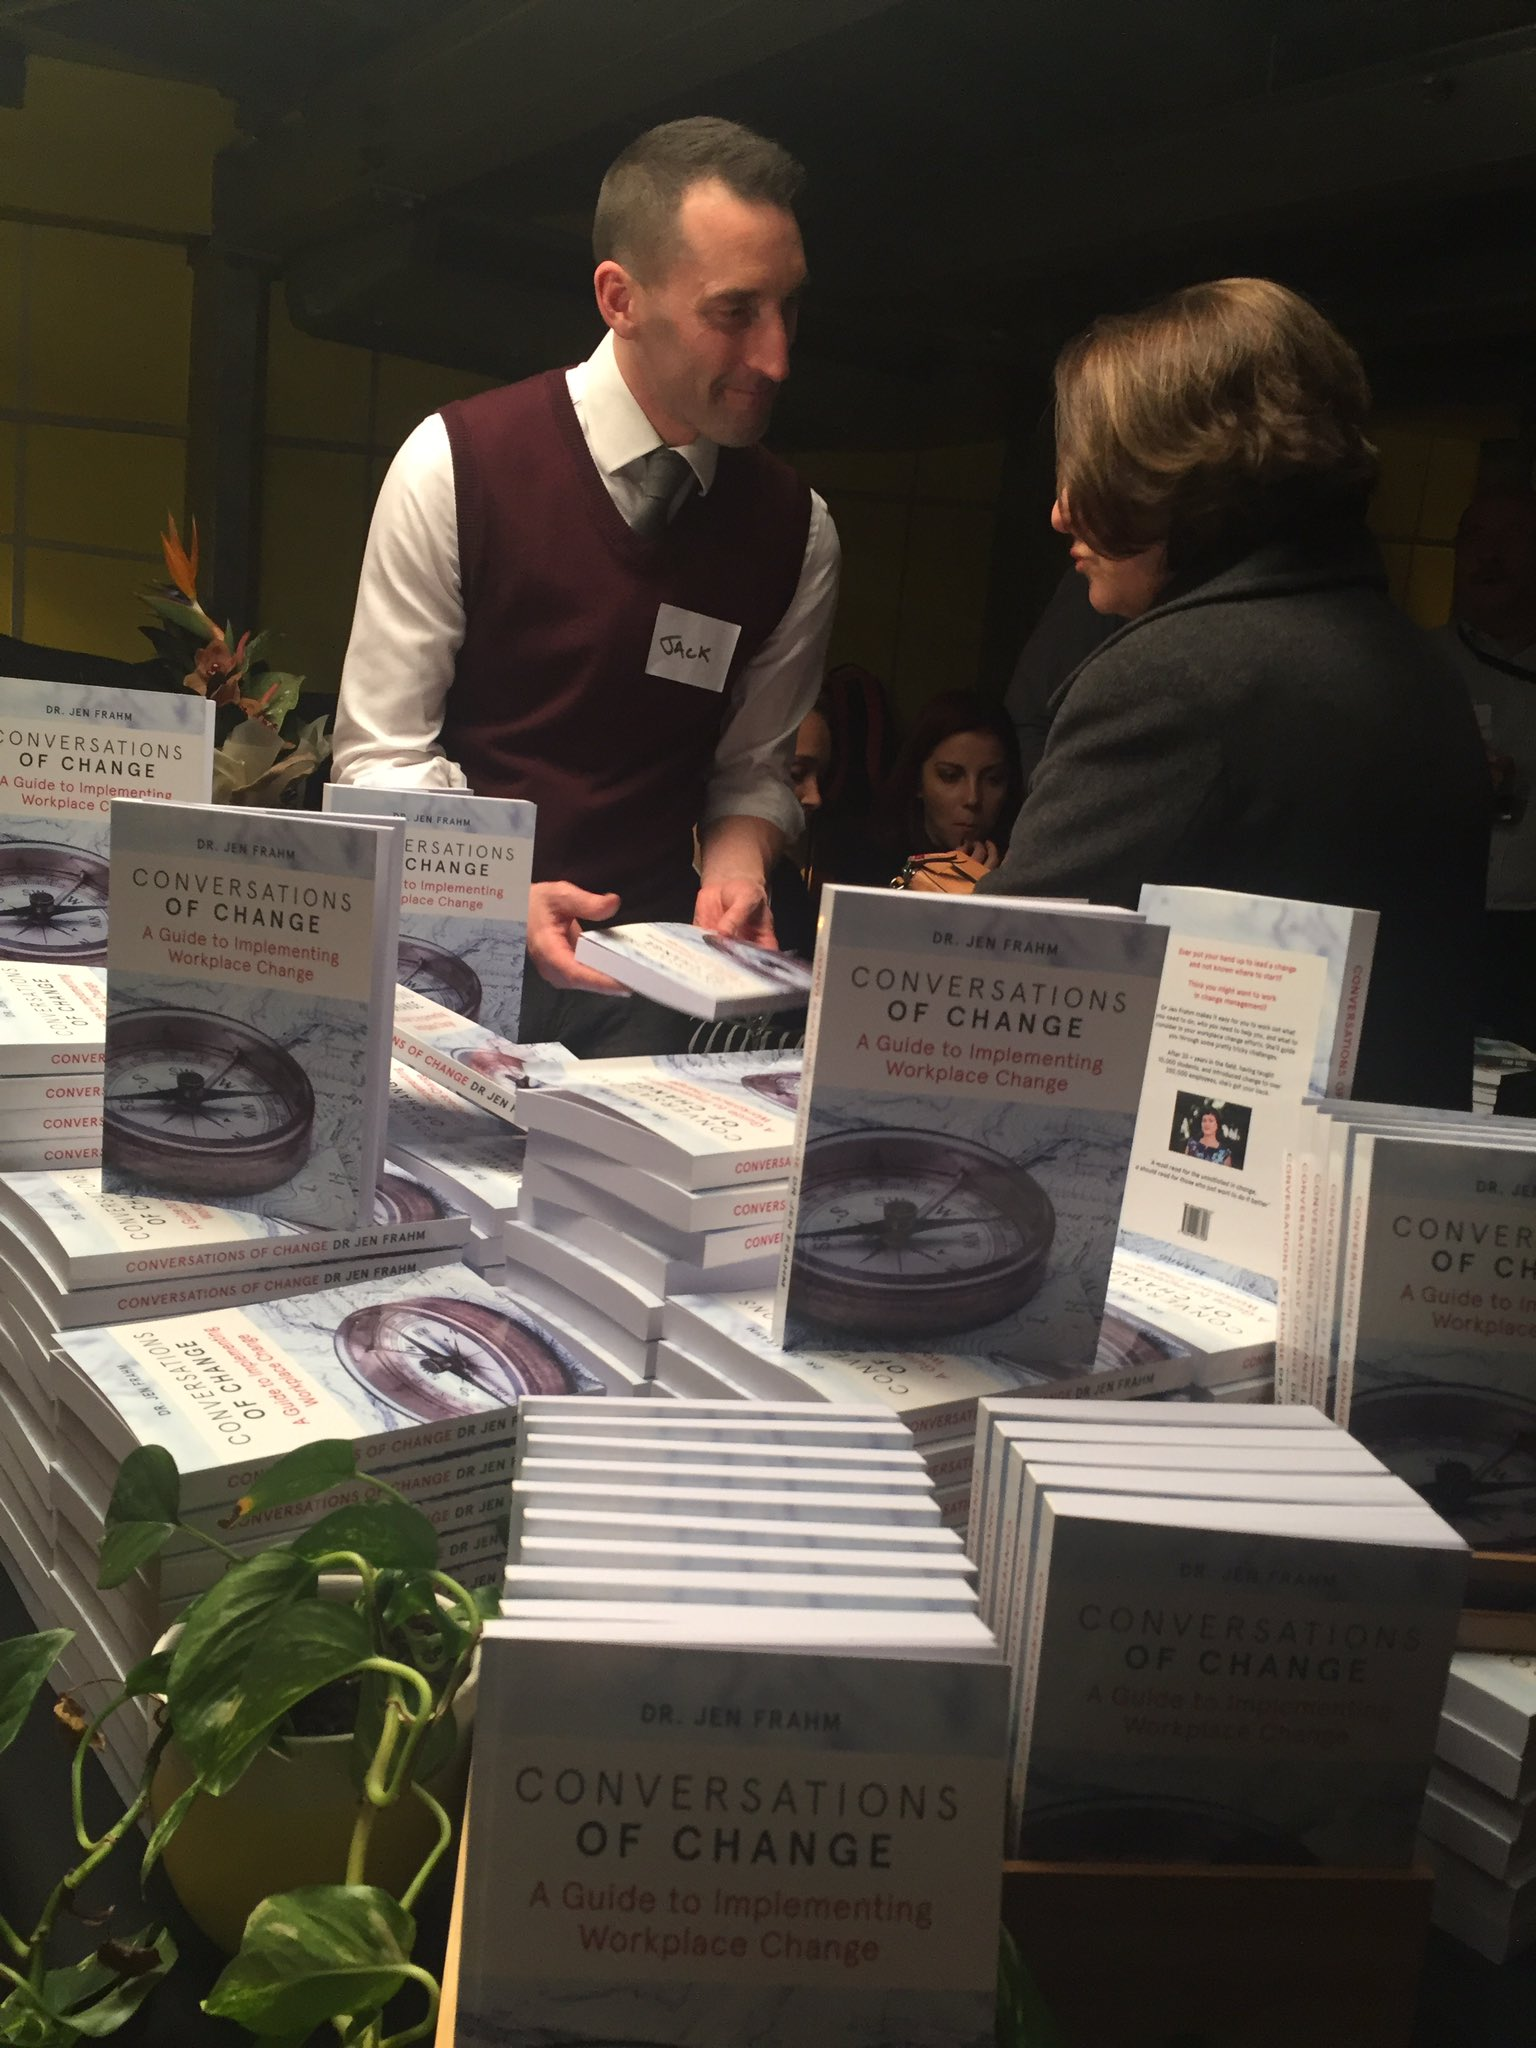 The lovely @Dunstanet taking care of  book 📚 sales #brainpickerslive #jointhechange https://t.co/C27ykIGyDf